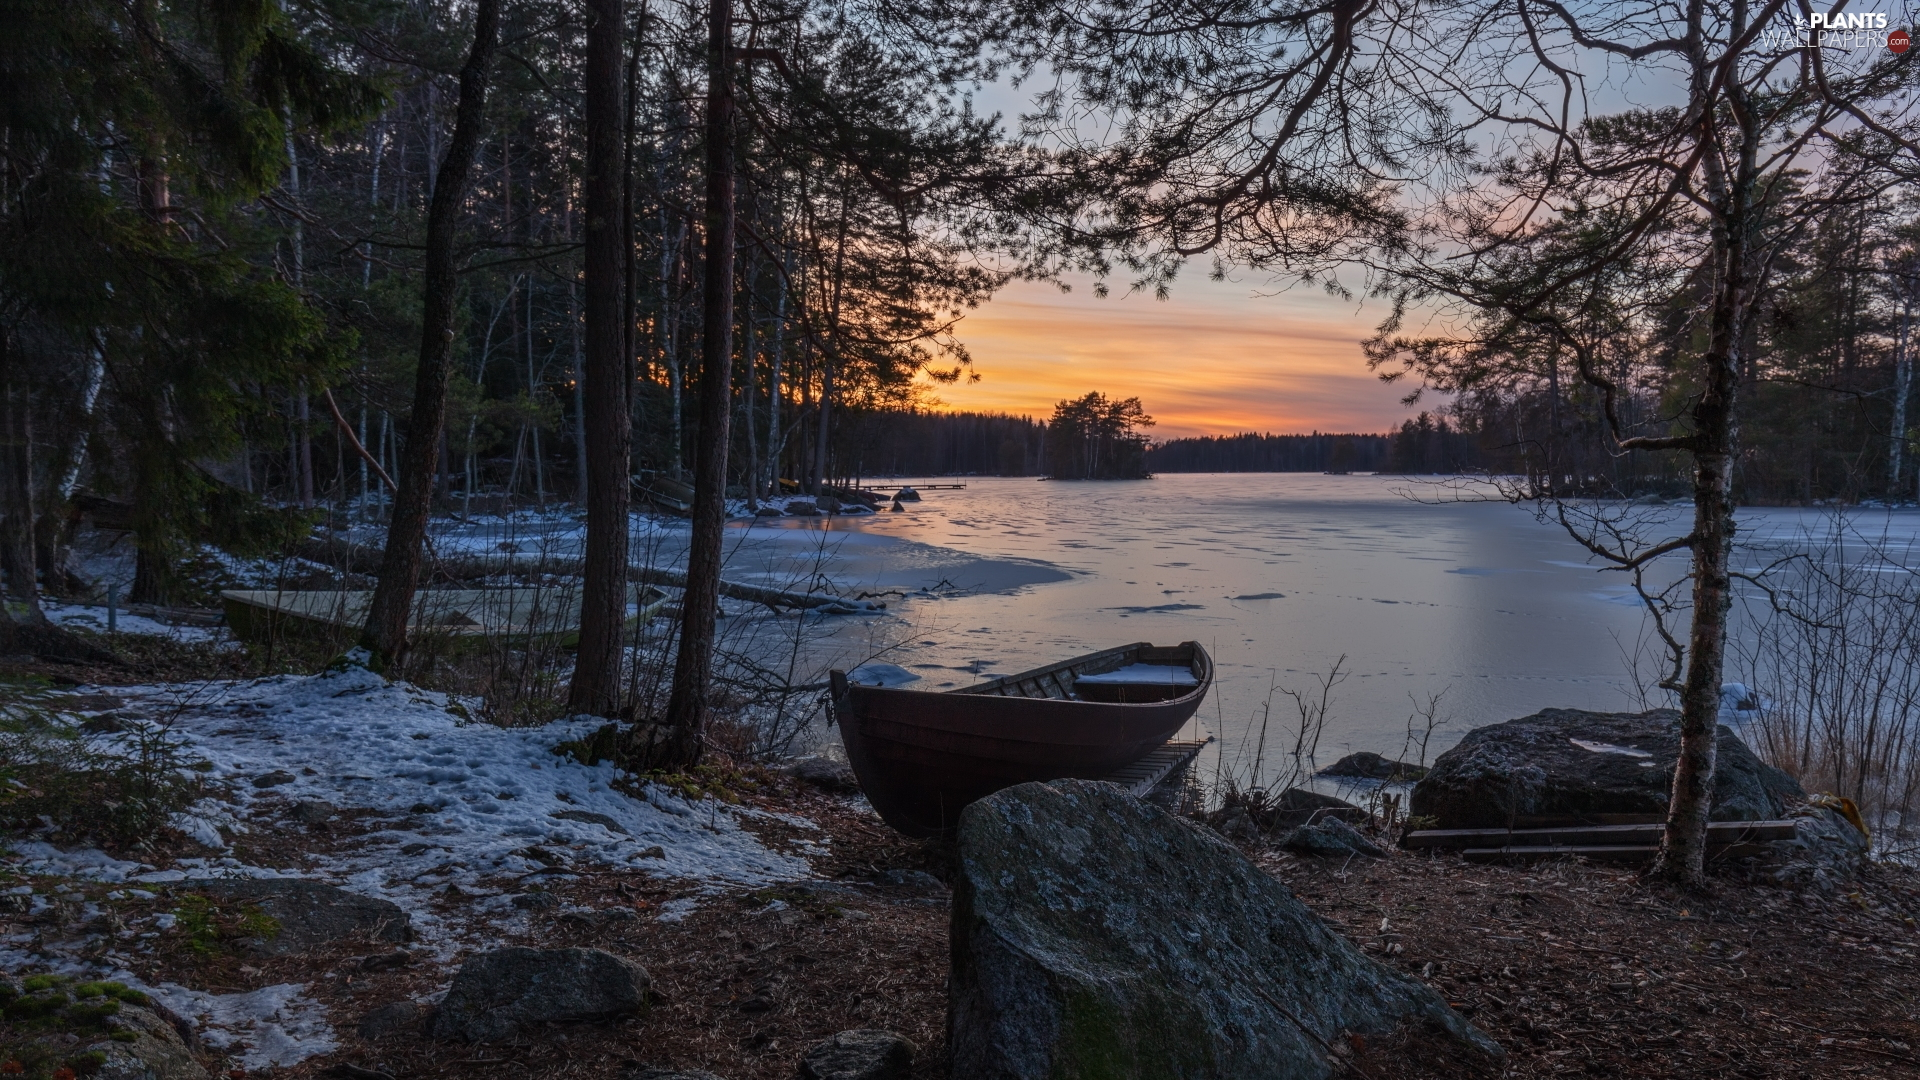 viewes, lake, Sunrise, winter, Boat, trees